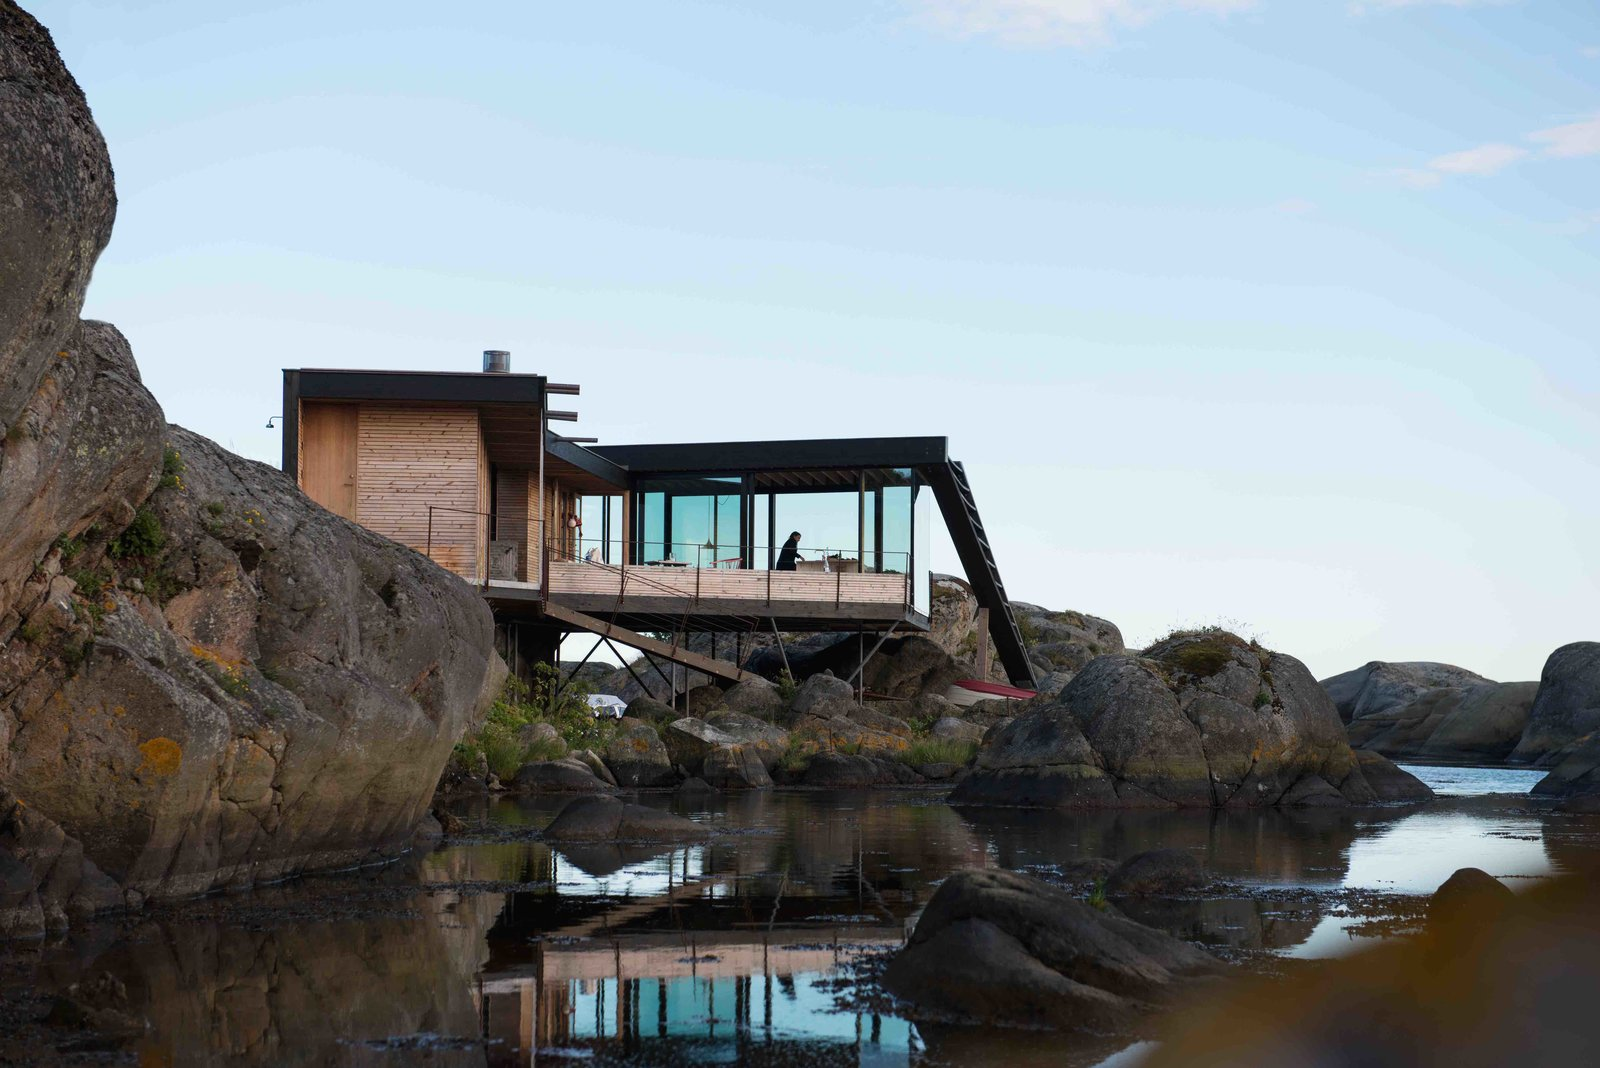 Dwell's Top 10 Cabins of 2017